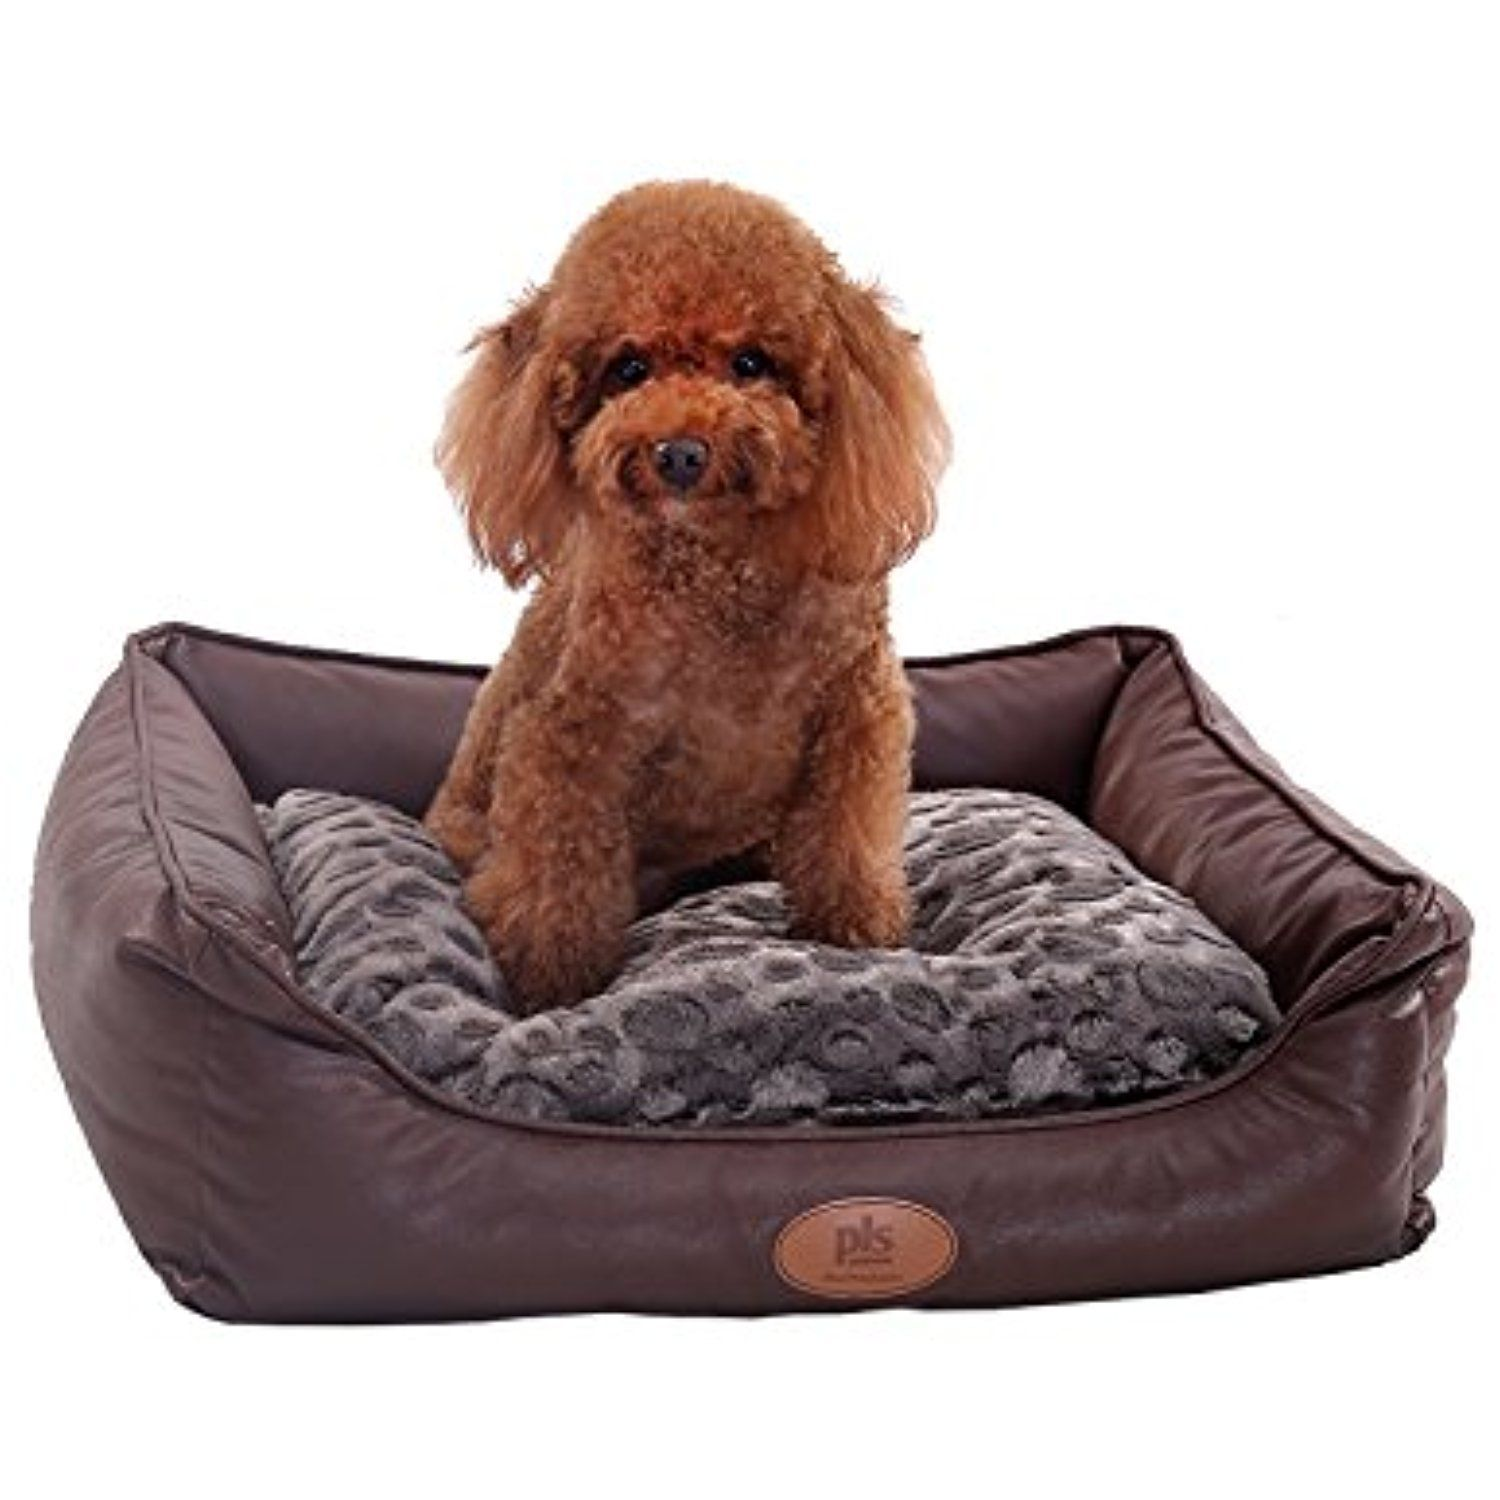 New Pls Birdsong Brownie Bolster Pet Bed Small Dog Bed Cat Bed